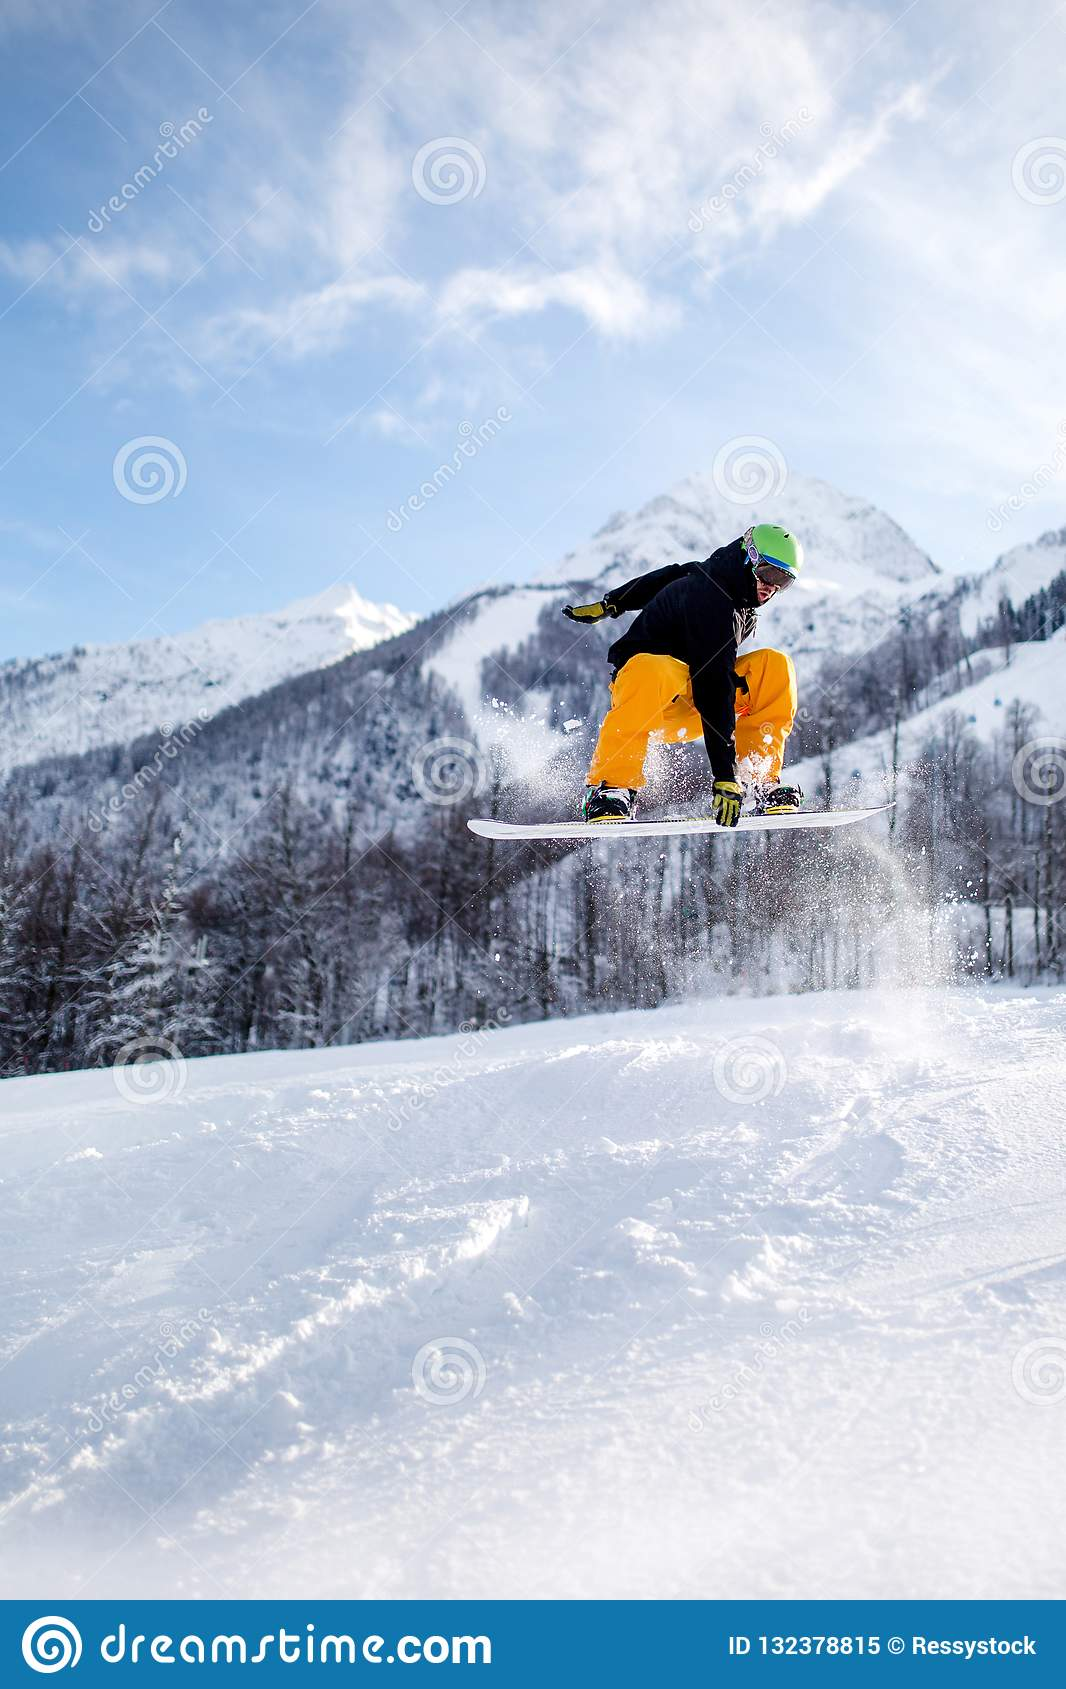 Cool Snowboarder In High Mountains During Sunny Day Stock Image Image Of Recreation Activity 132378815